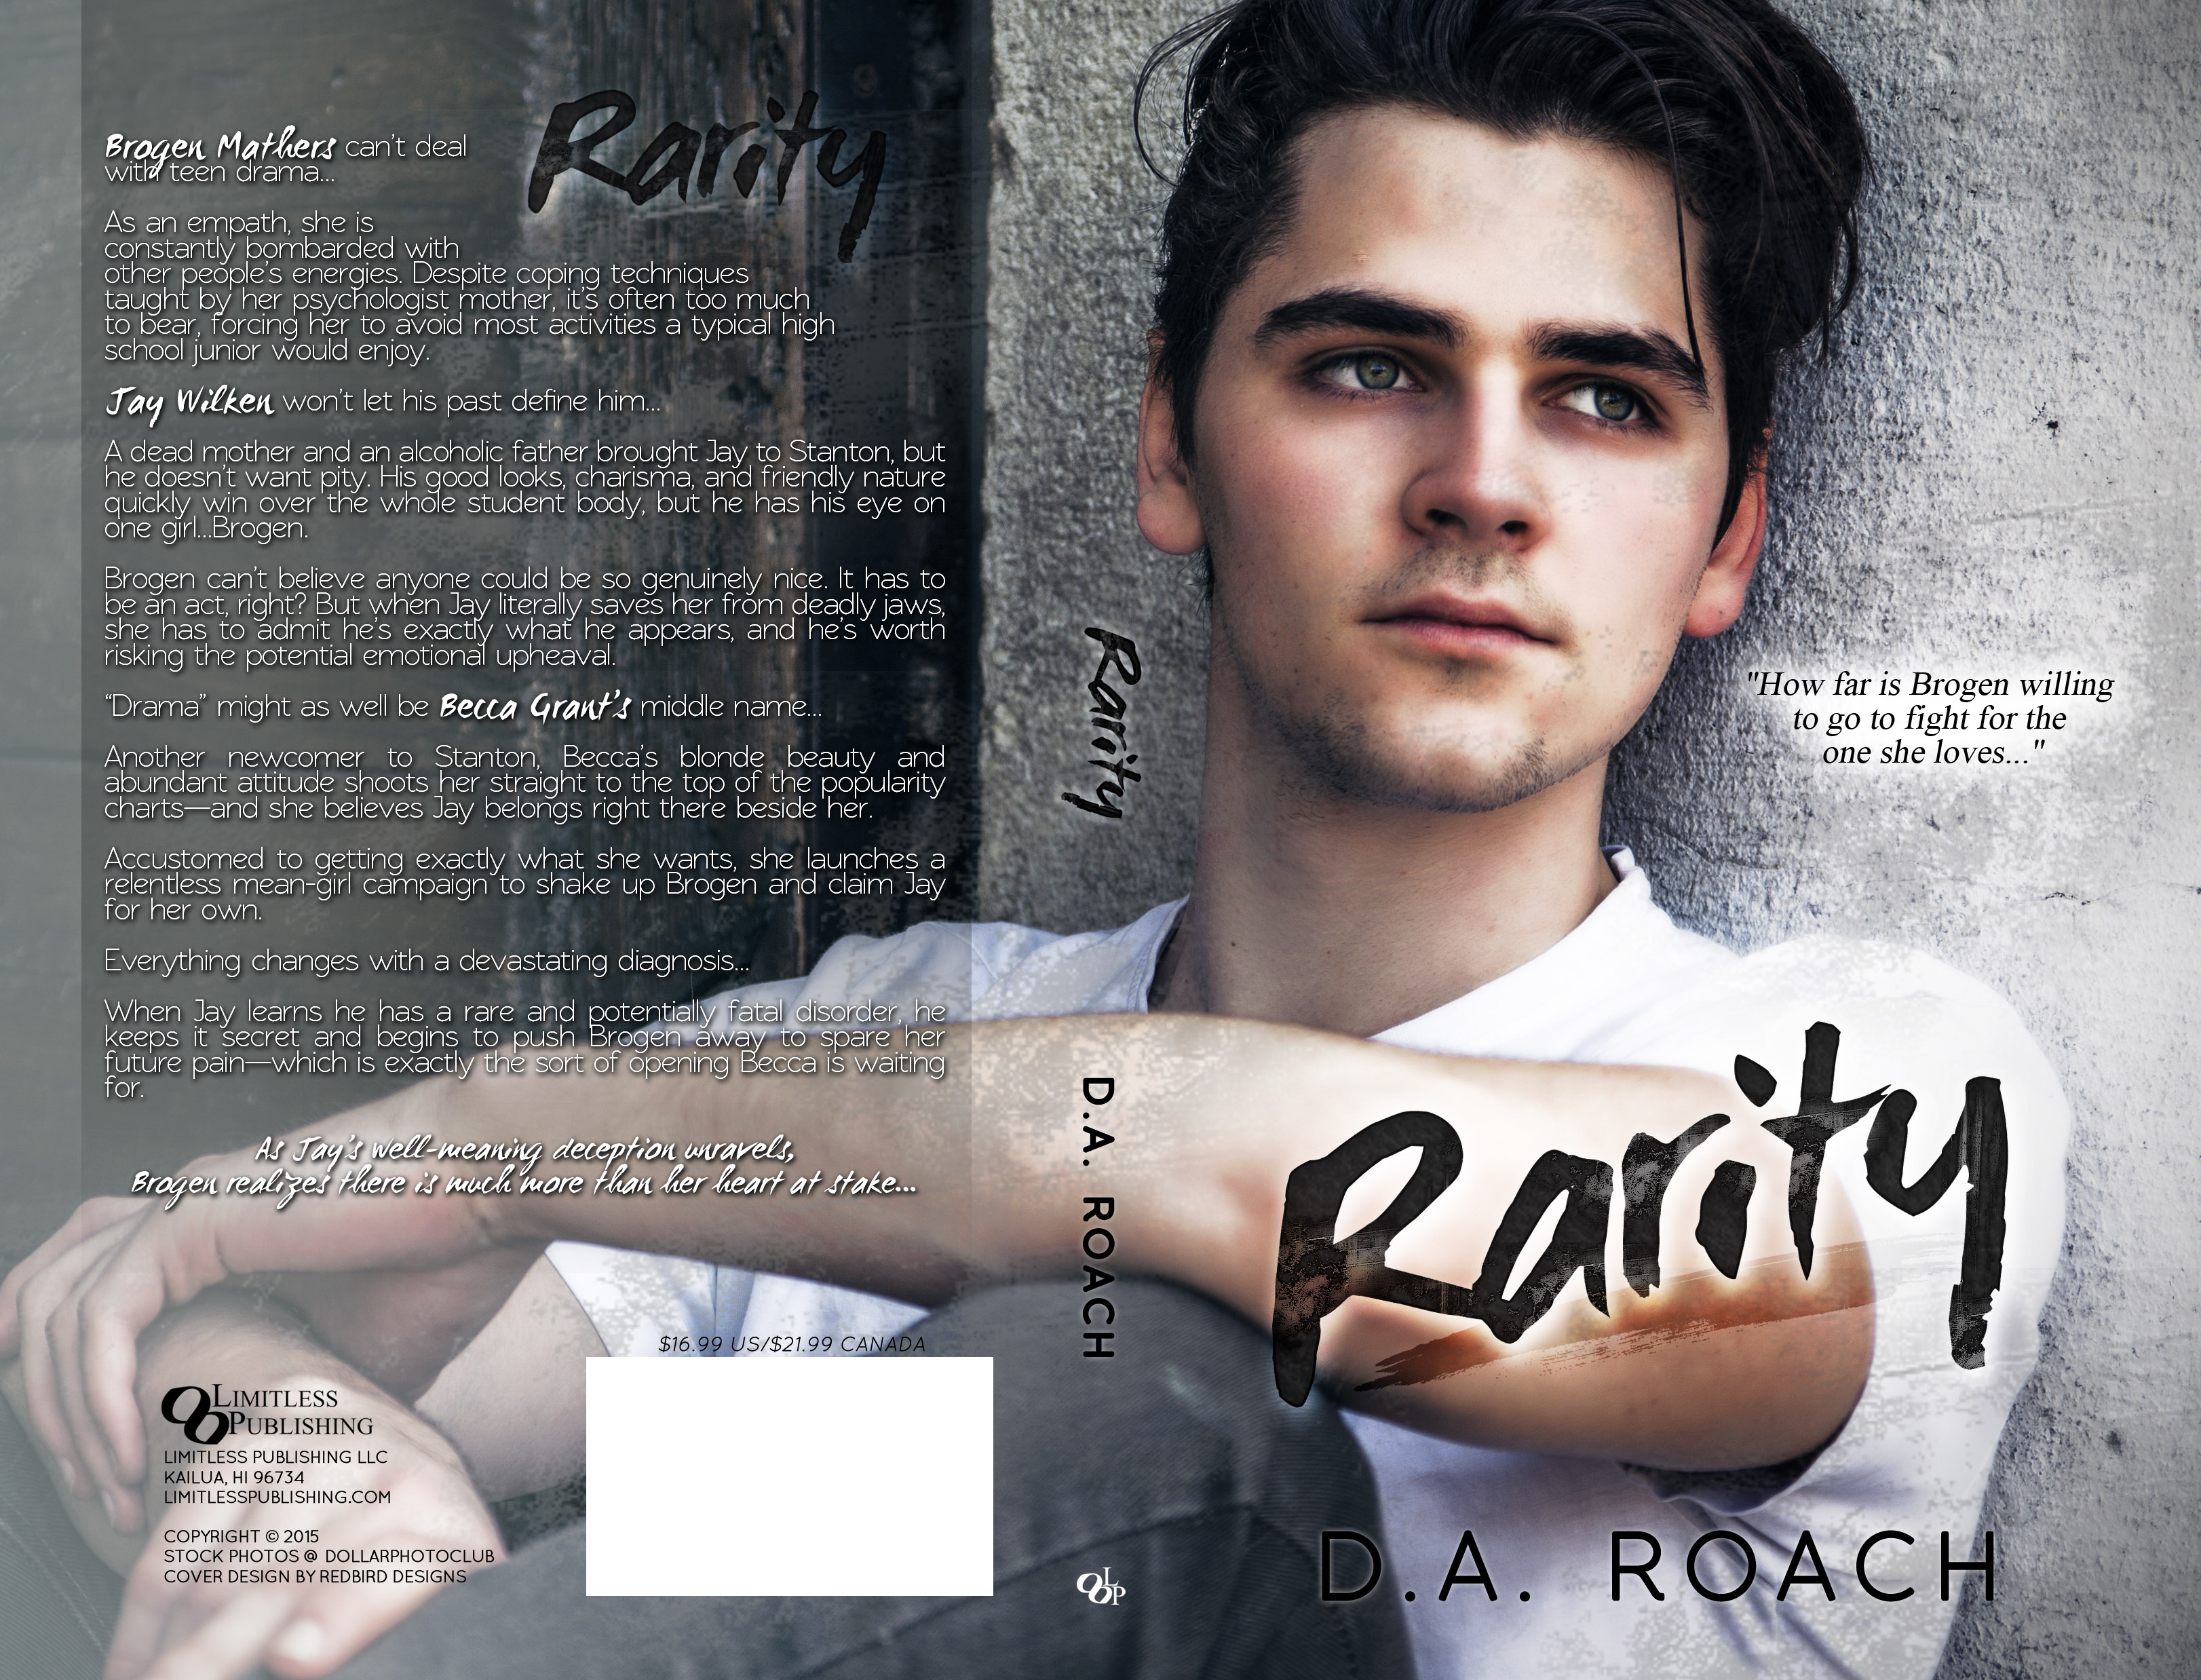 Chasing a cure for Vascular Ehlers-Danlos Syndrome – Interview with D.A. Roach – author of Rarity (and book giveaway!)